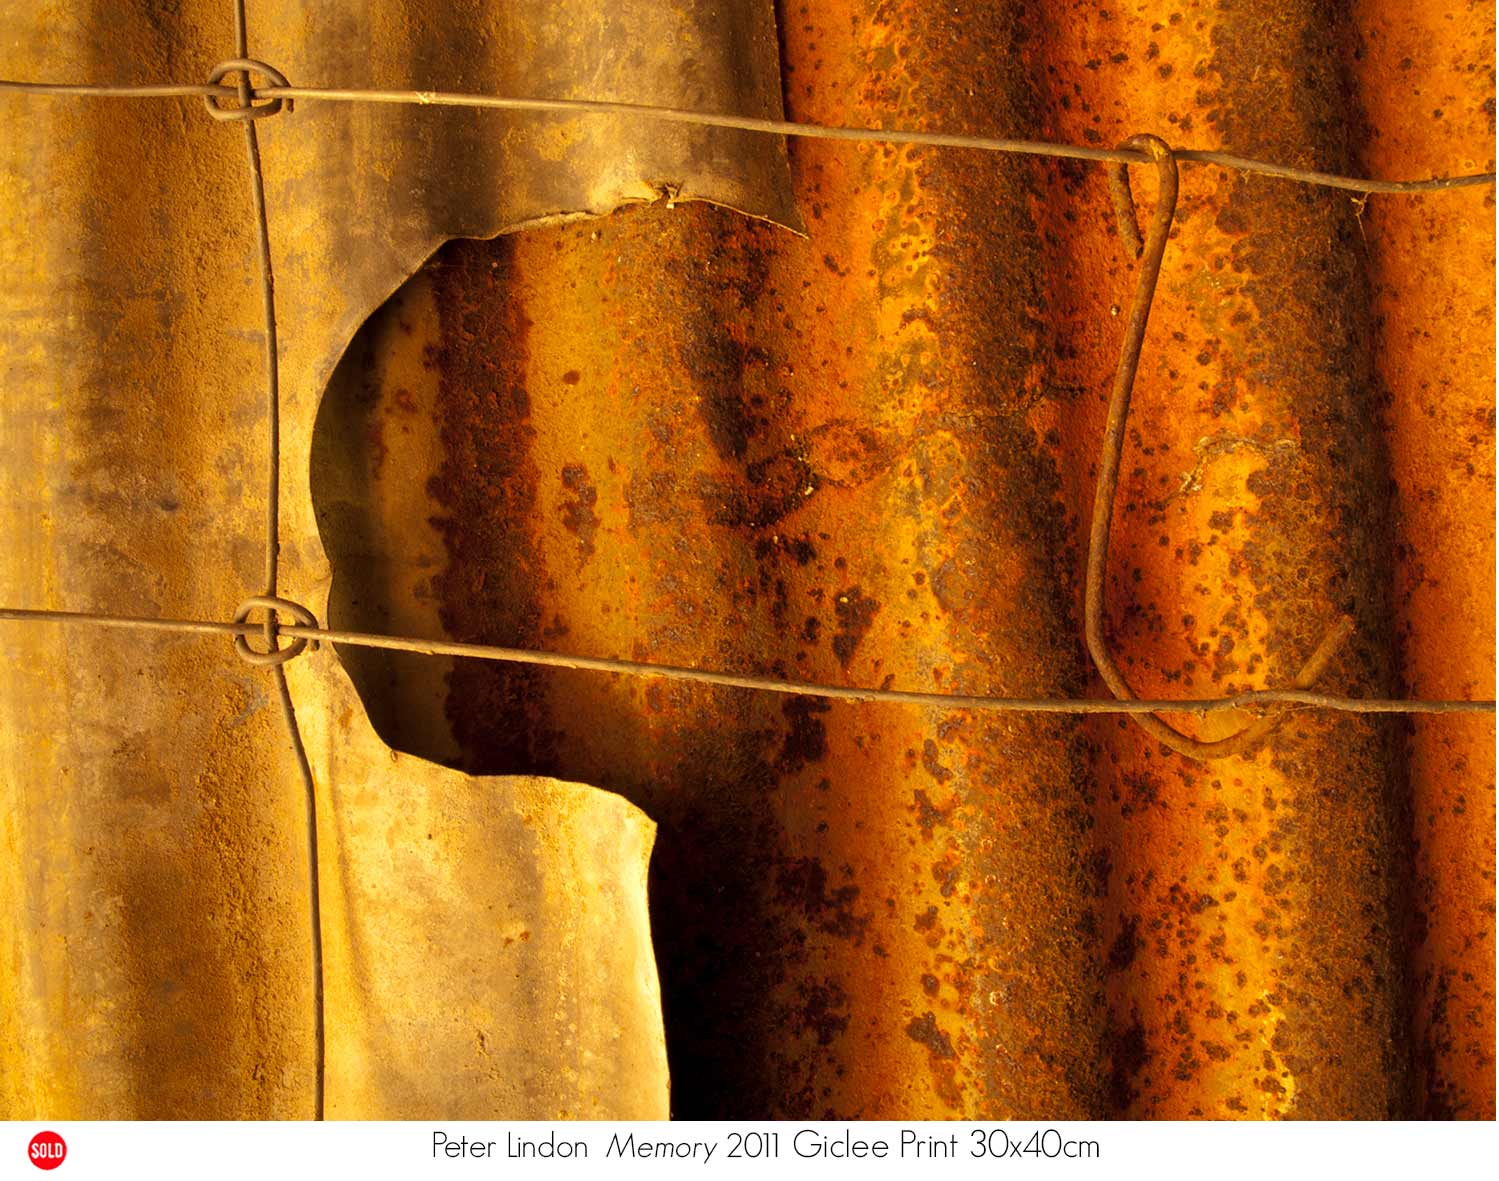 Peter Lindon - Collector's Choice 2011. Artsite Gallery,  26 November - 11 December 2011.